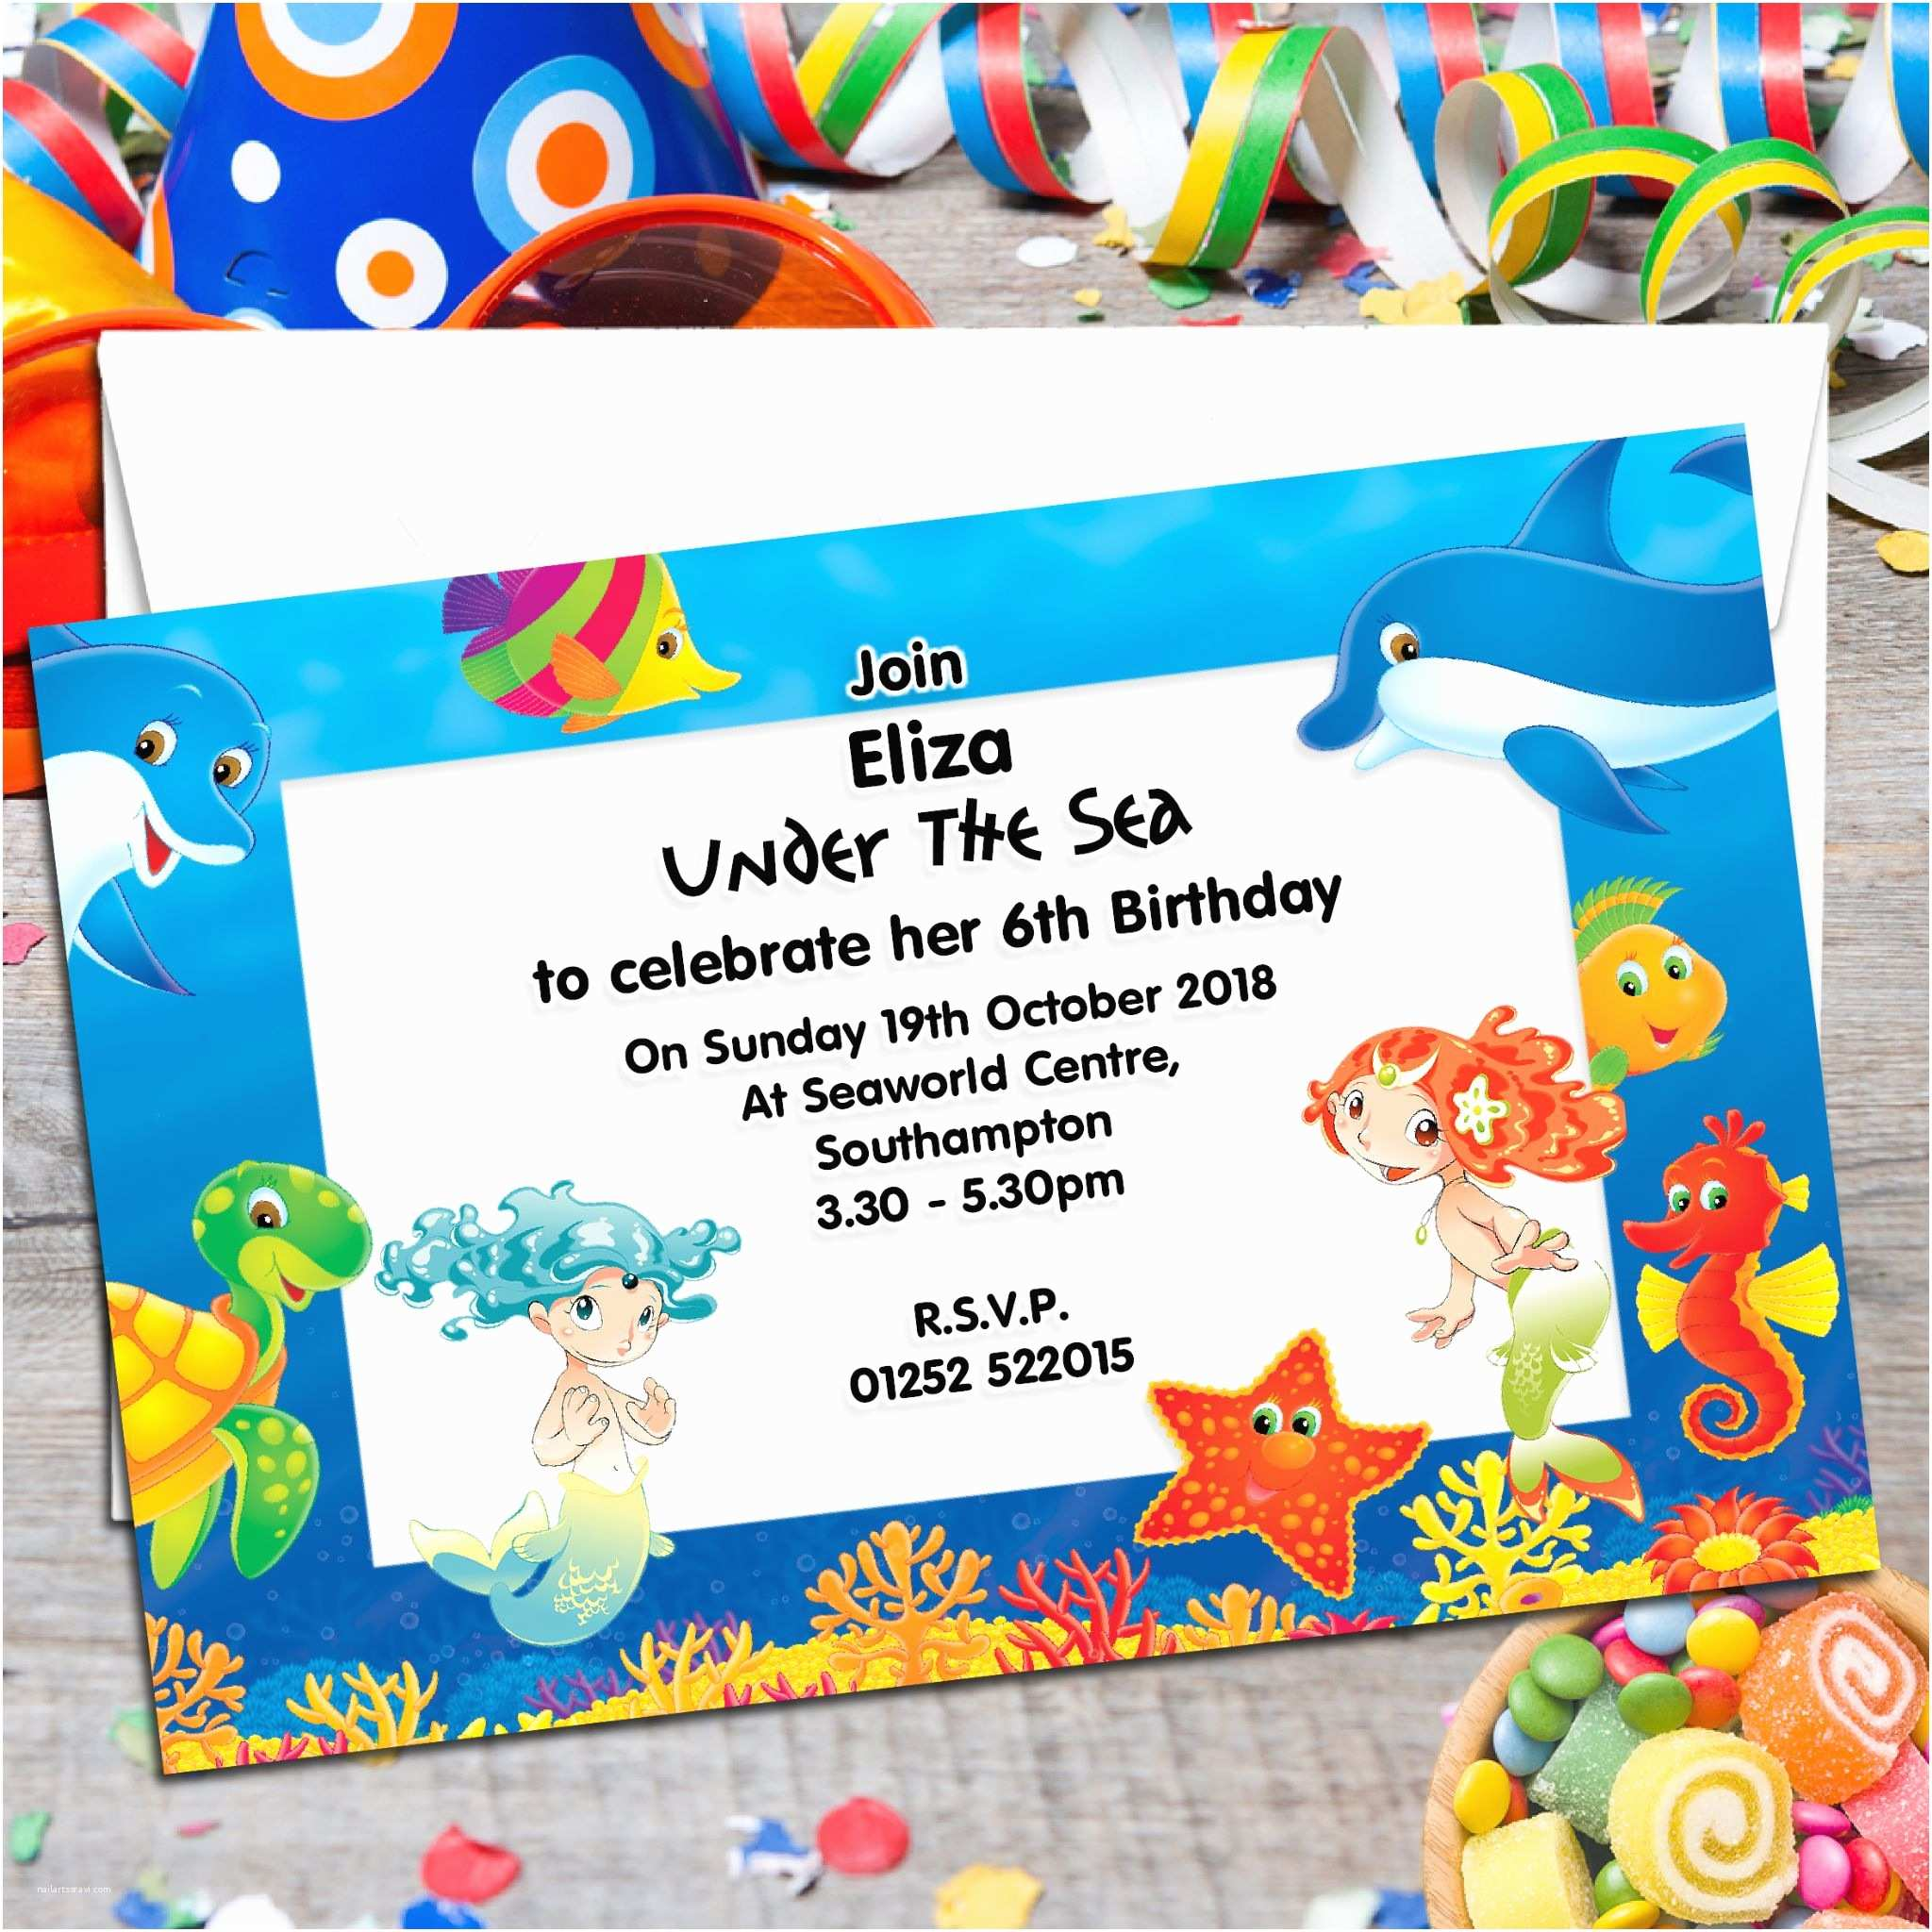 Under the Sea Party Invitations 10 Personalised Under the Sea Birthday Party Invitations N70